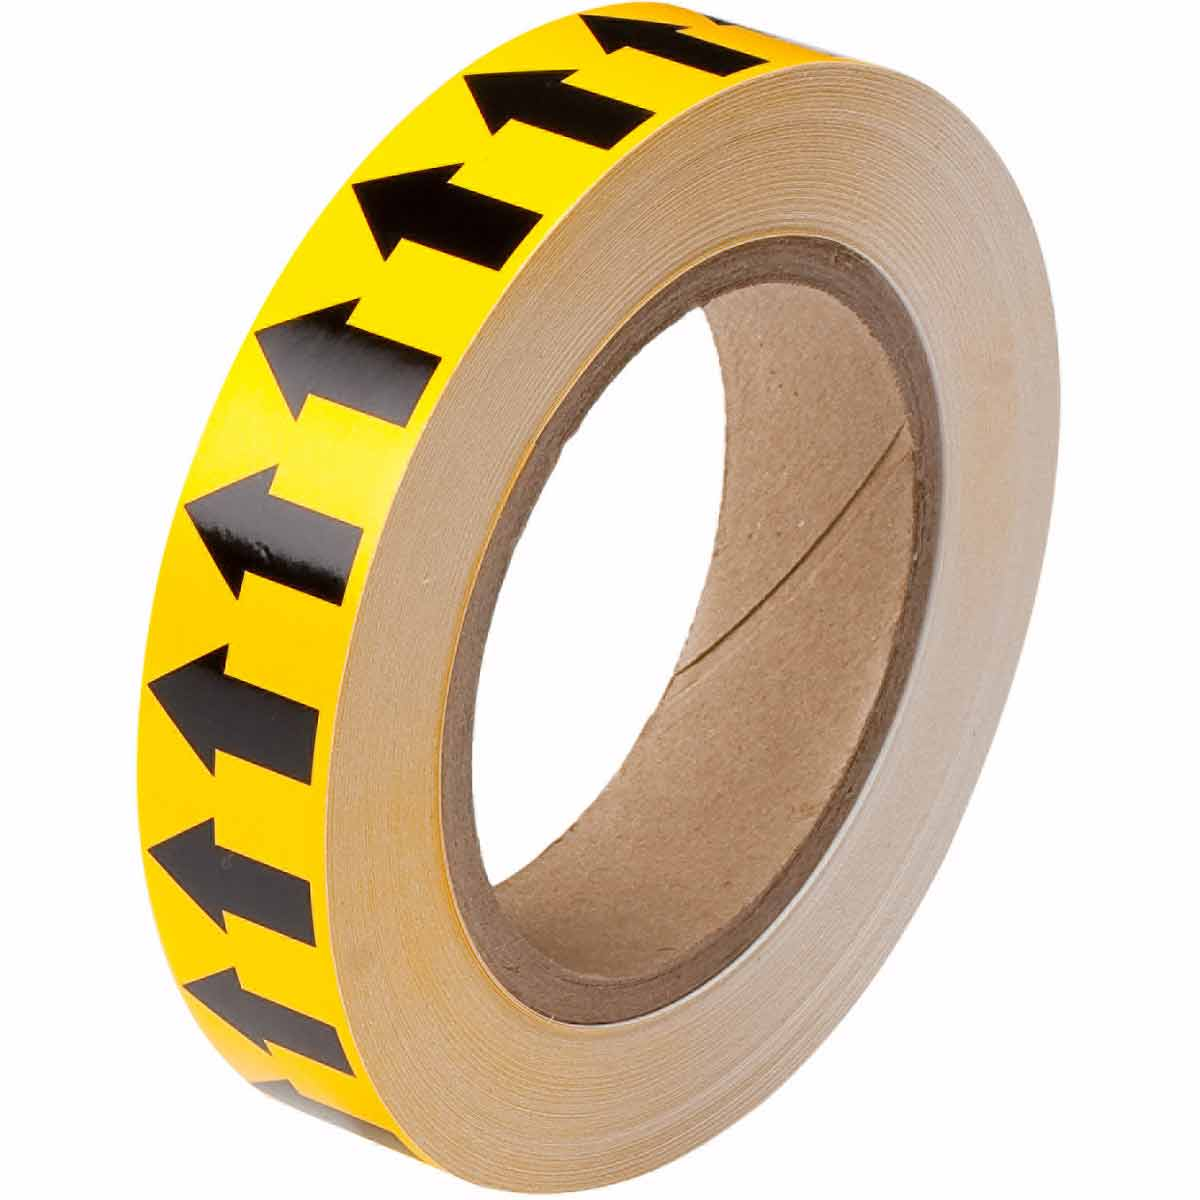 BRADY 91424 1 YELLOW ARROW TAPE